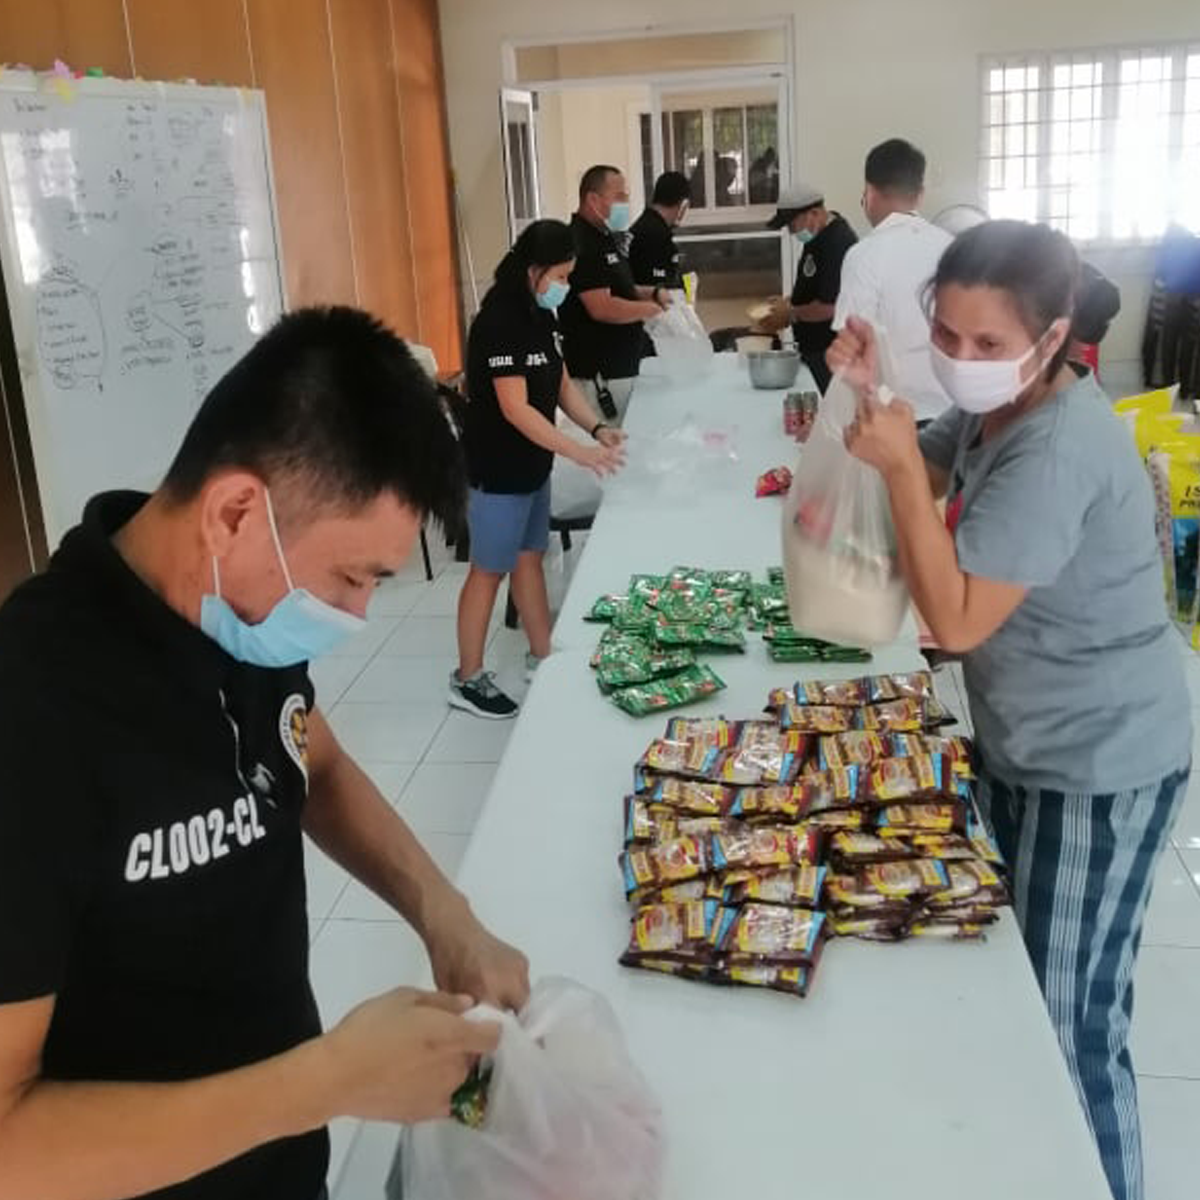 Later-day Saints all over the country adapted to the new normal of quarantine living to continue serving each other and helping others enjoying the blessings of the gospel.